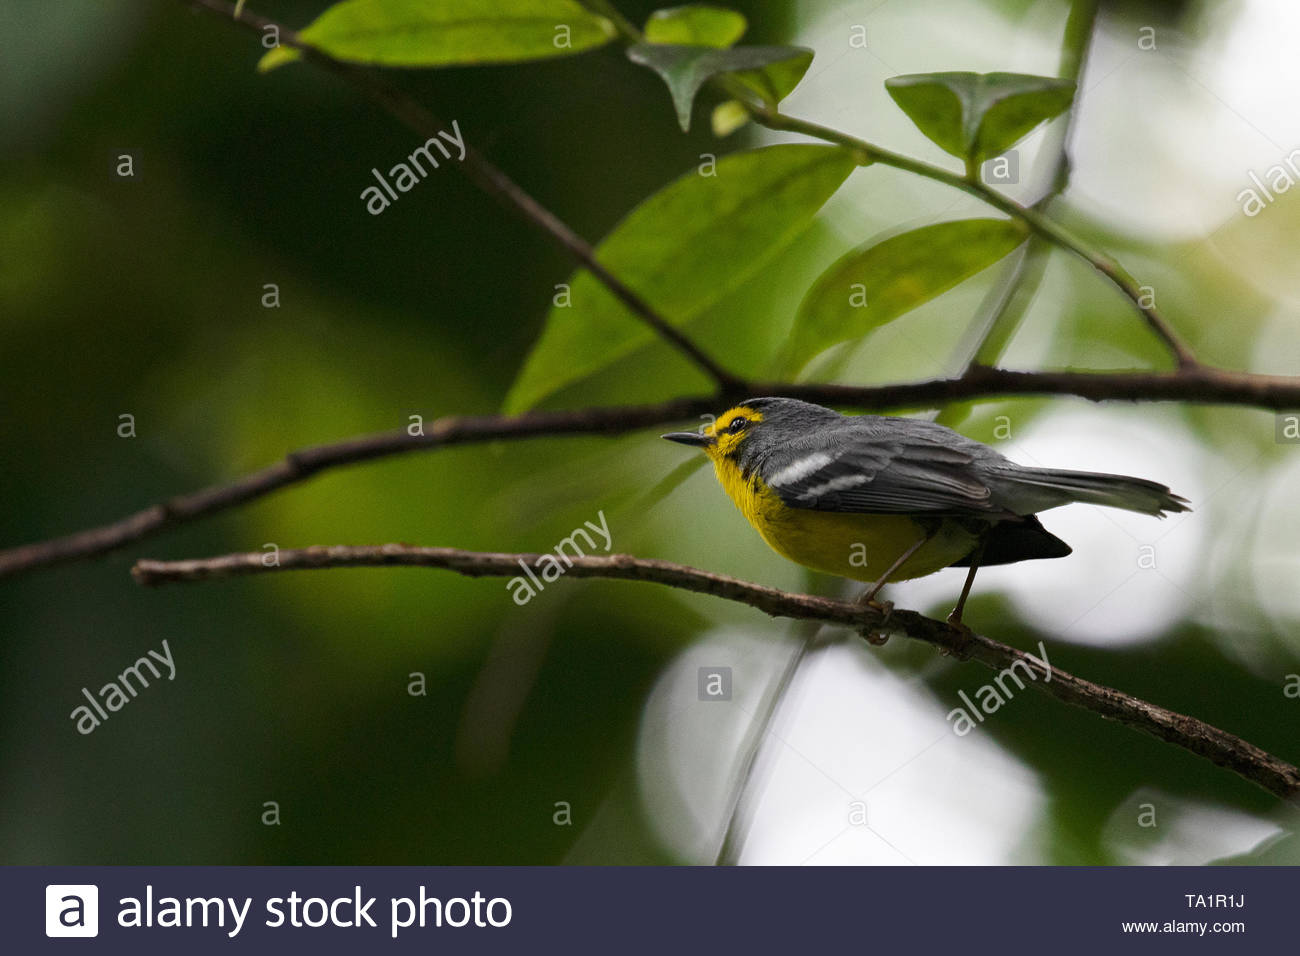 St. Lucia Warbler - Stock Image